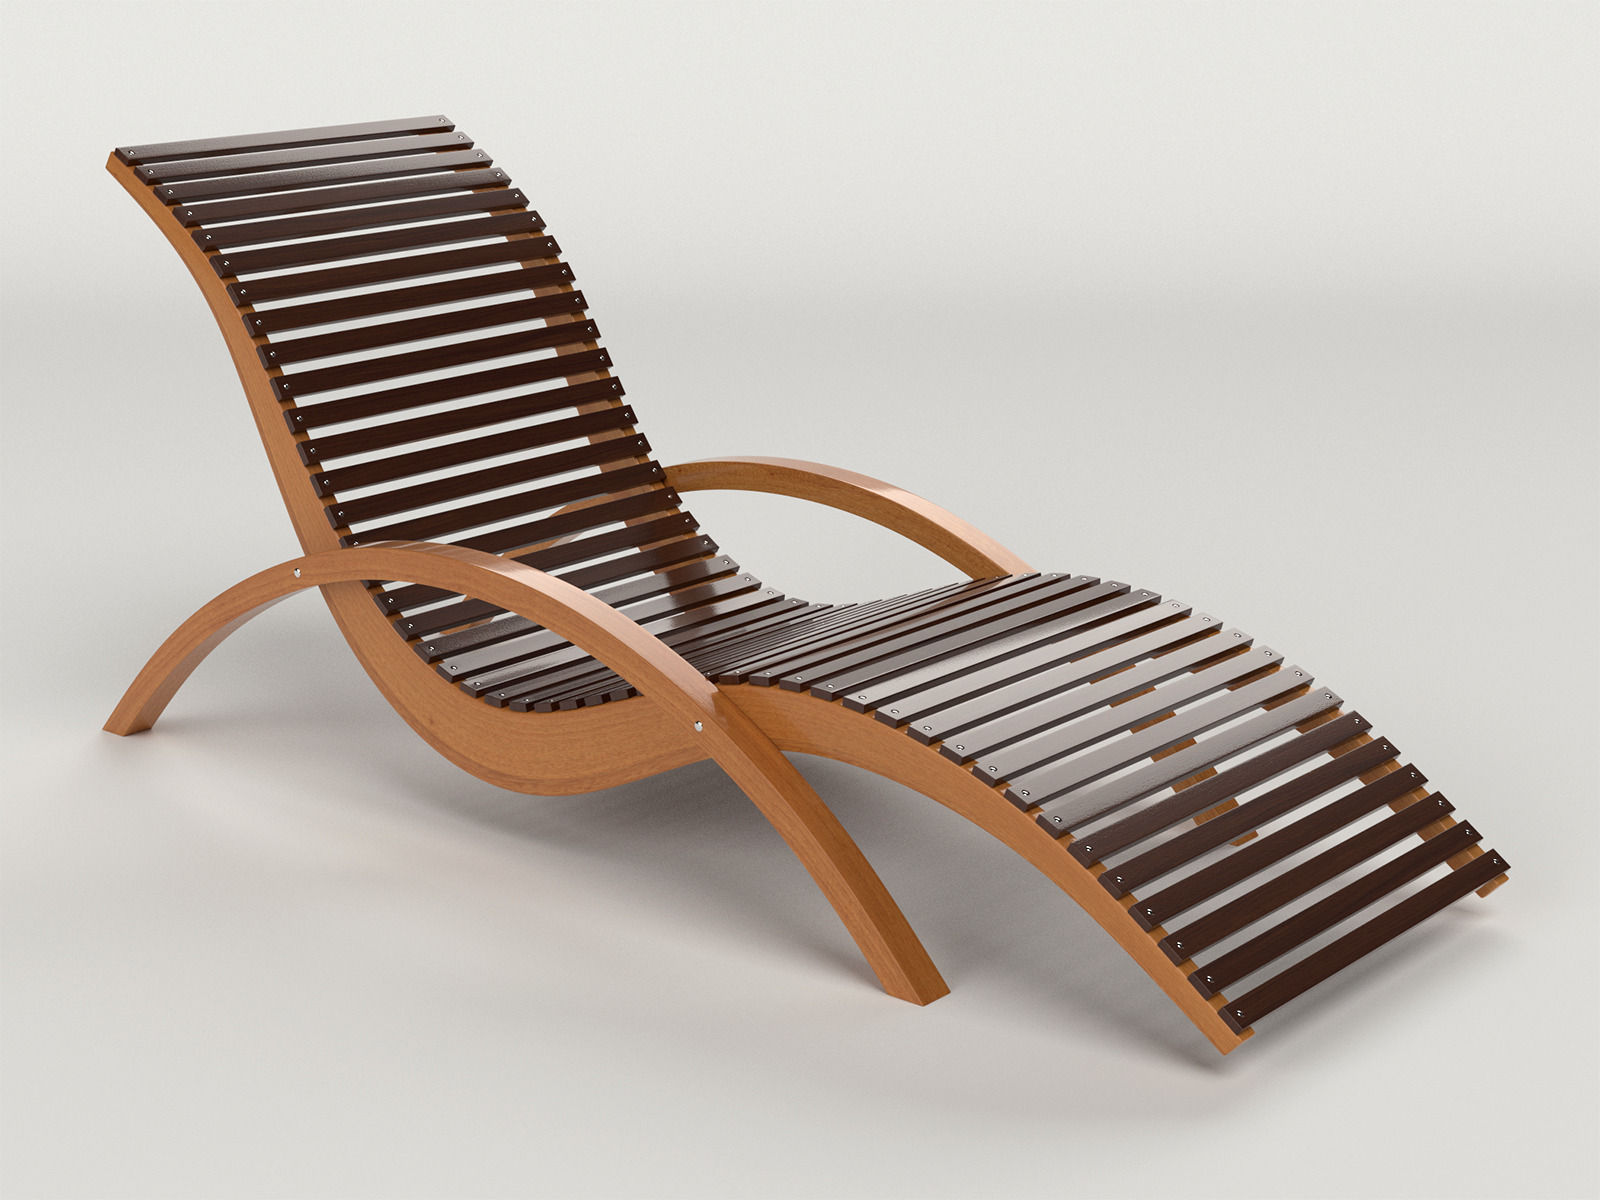 Best Wooden Lounge Chair Images